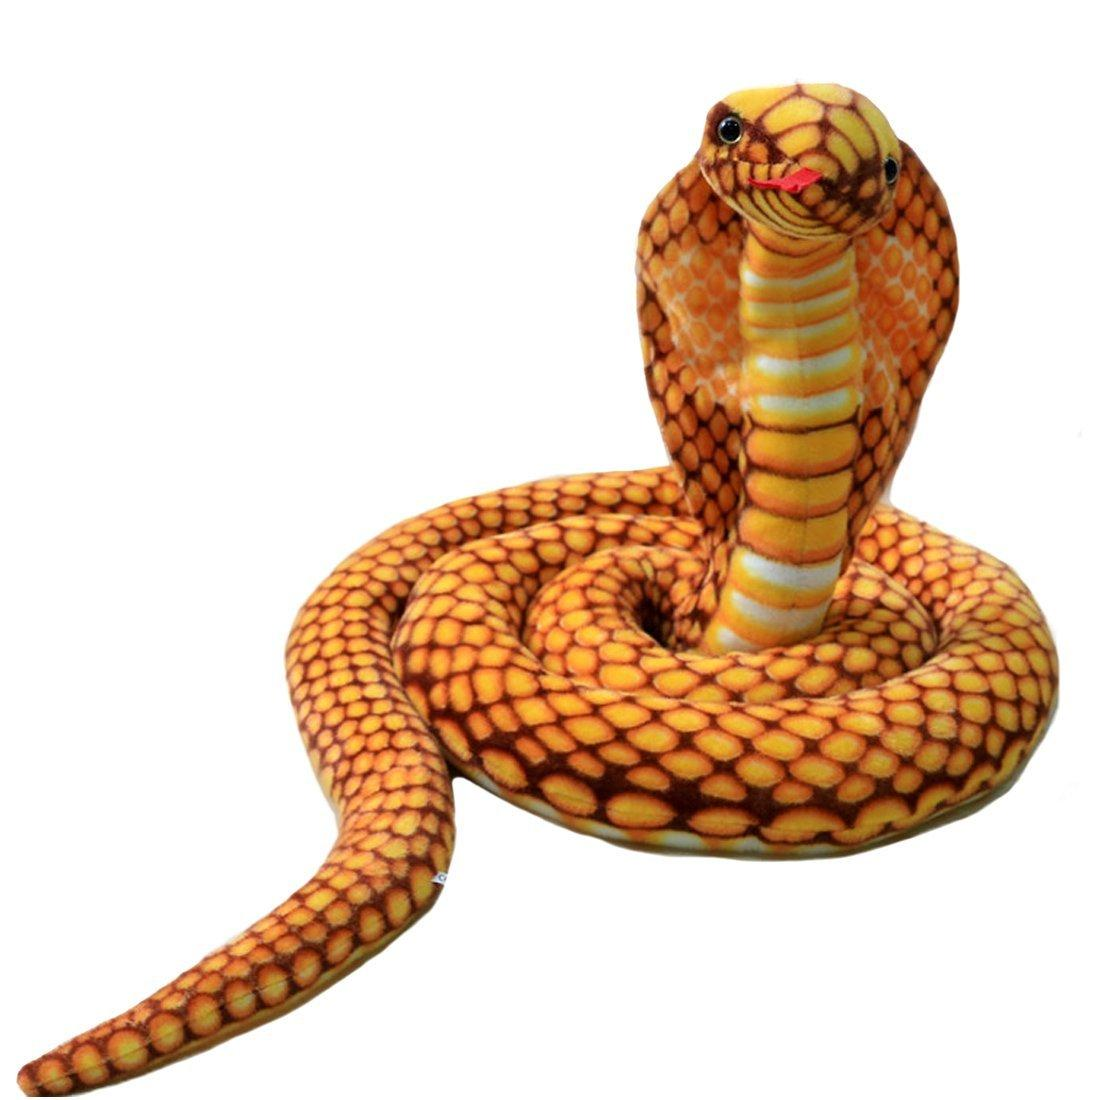 9 Foot Long Big Snake Stuffed Animal Plush toy Realistic Stuffed Giant Boa Constrictor Dolls